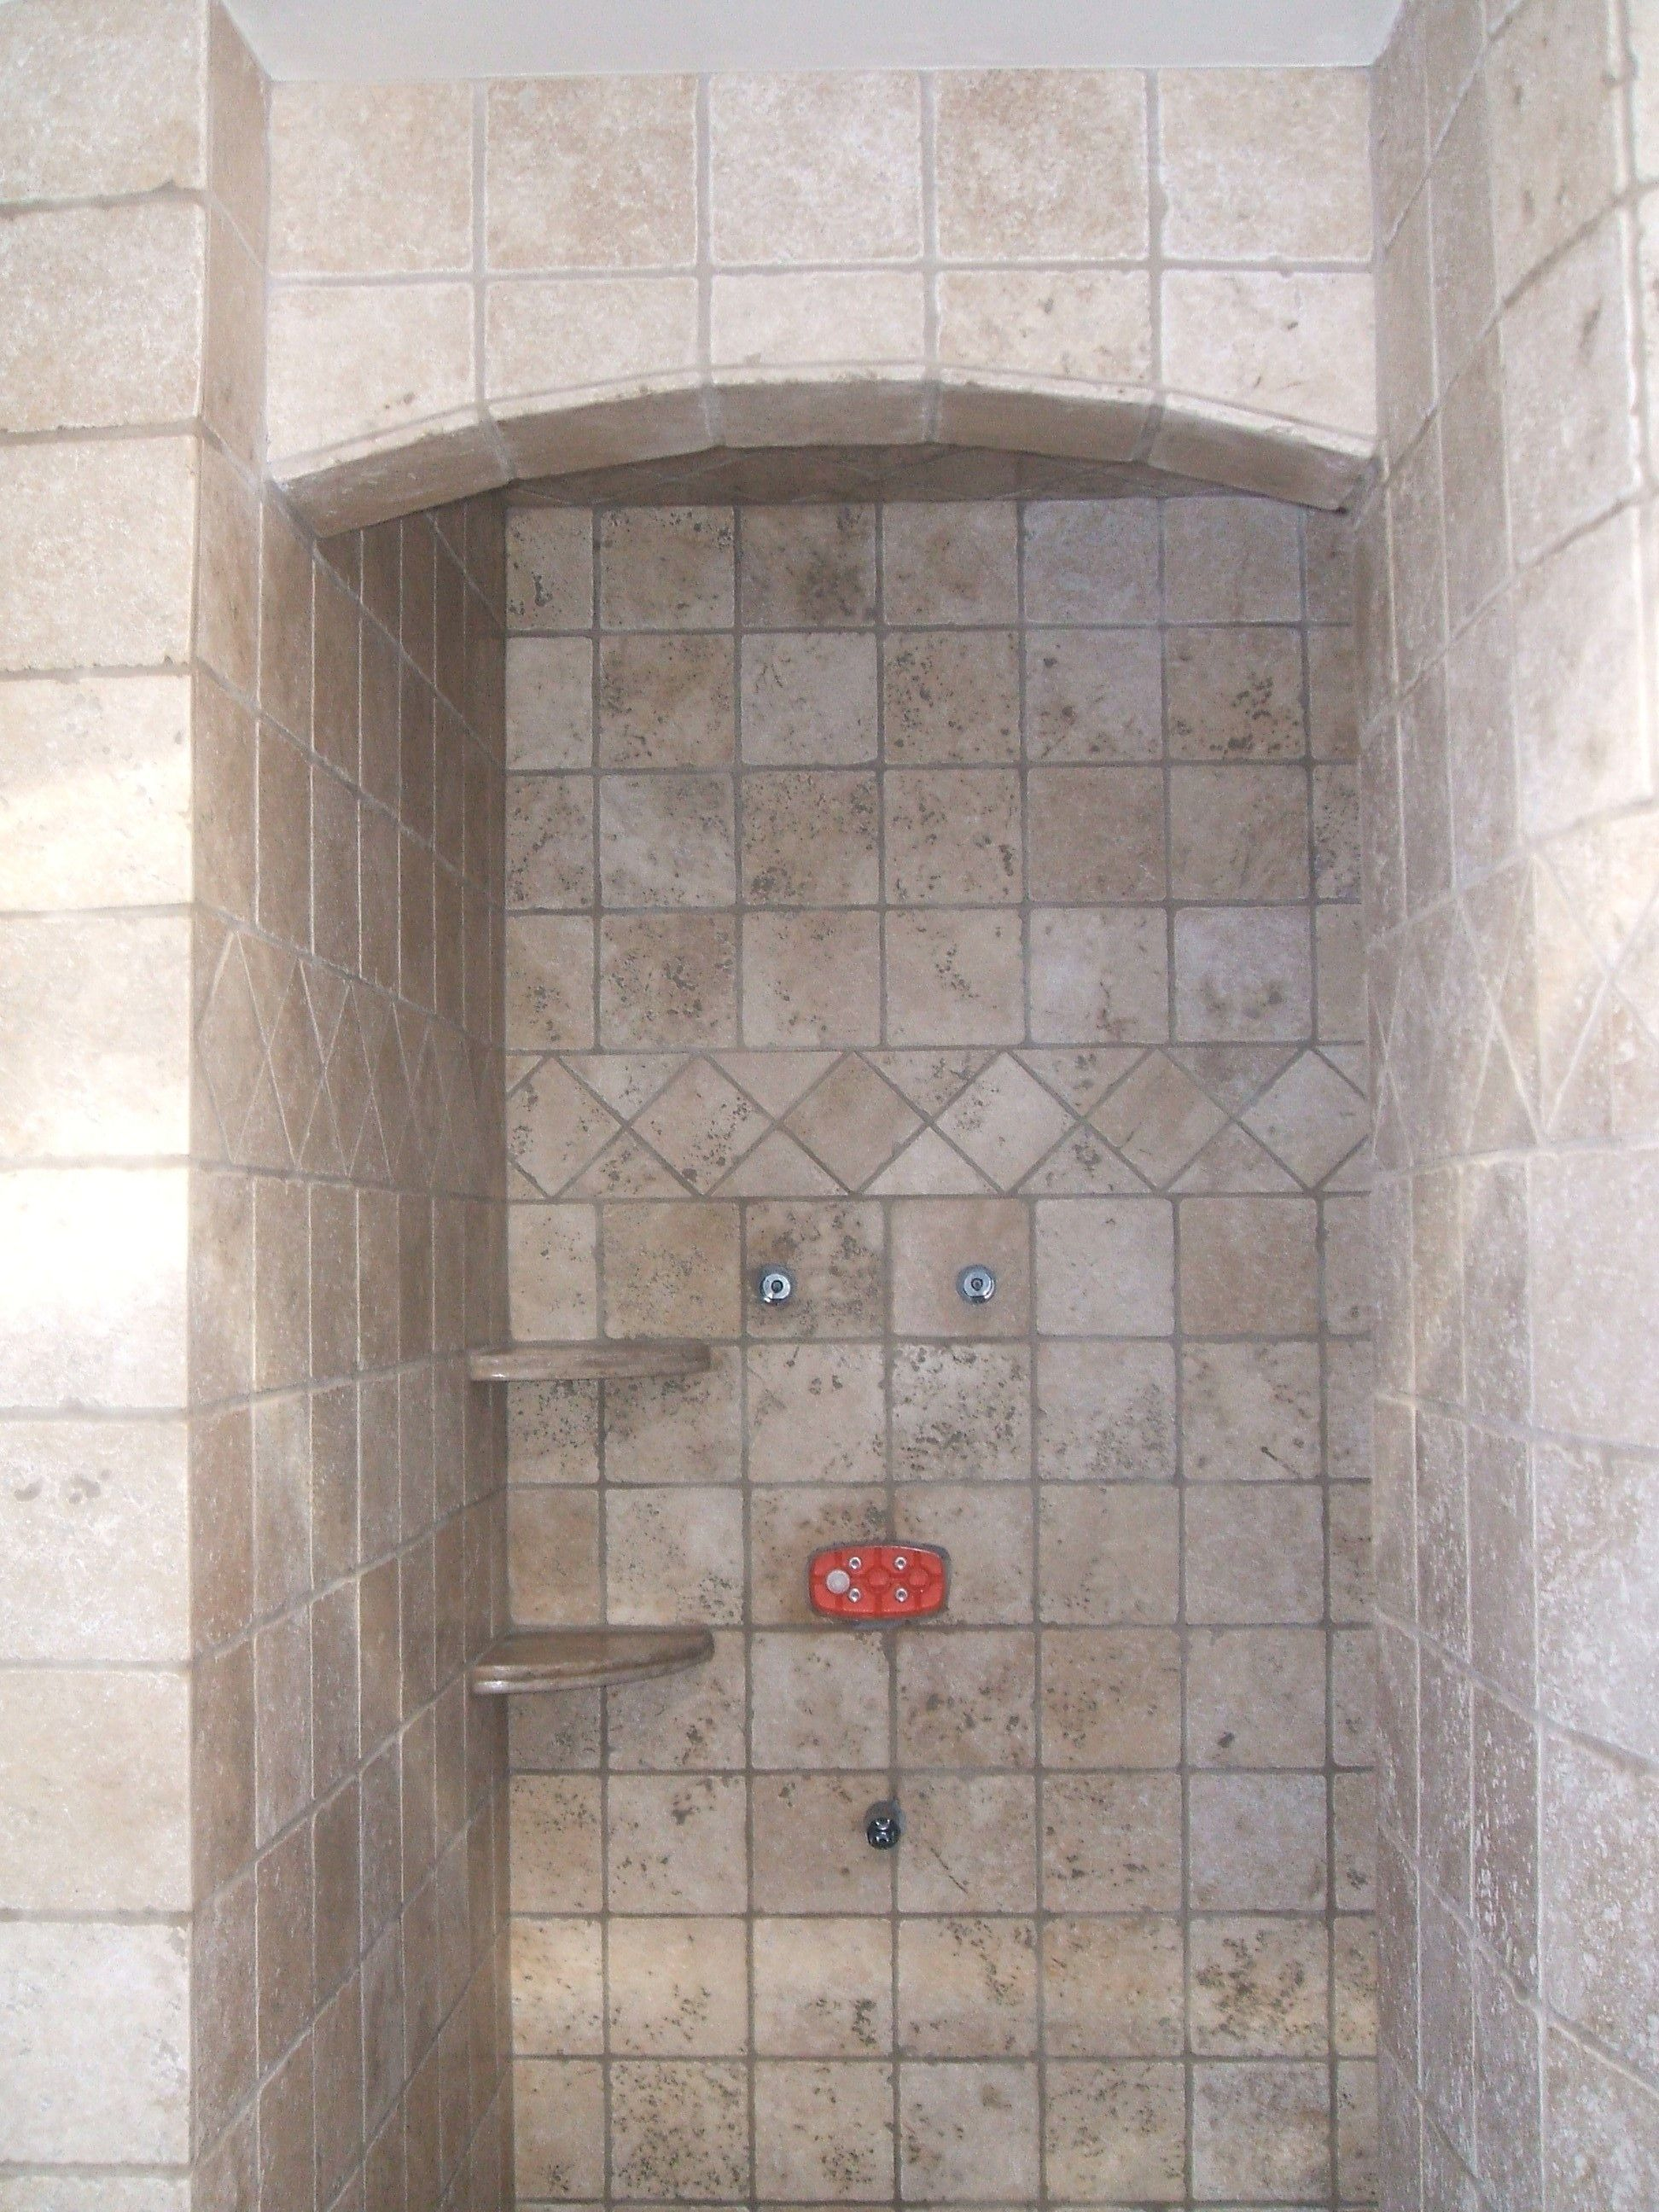 Terrific ceramic tile shower ideas small bathrooms with for Ceramic bathroom tile designs